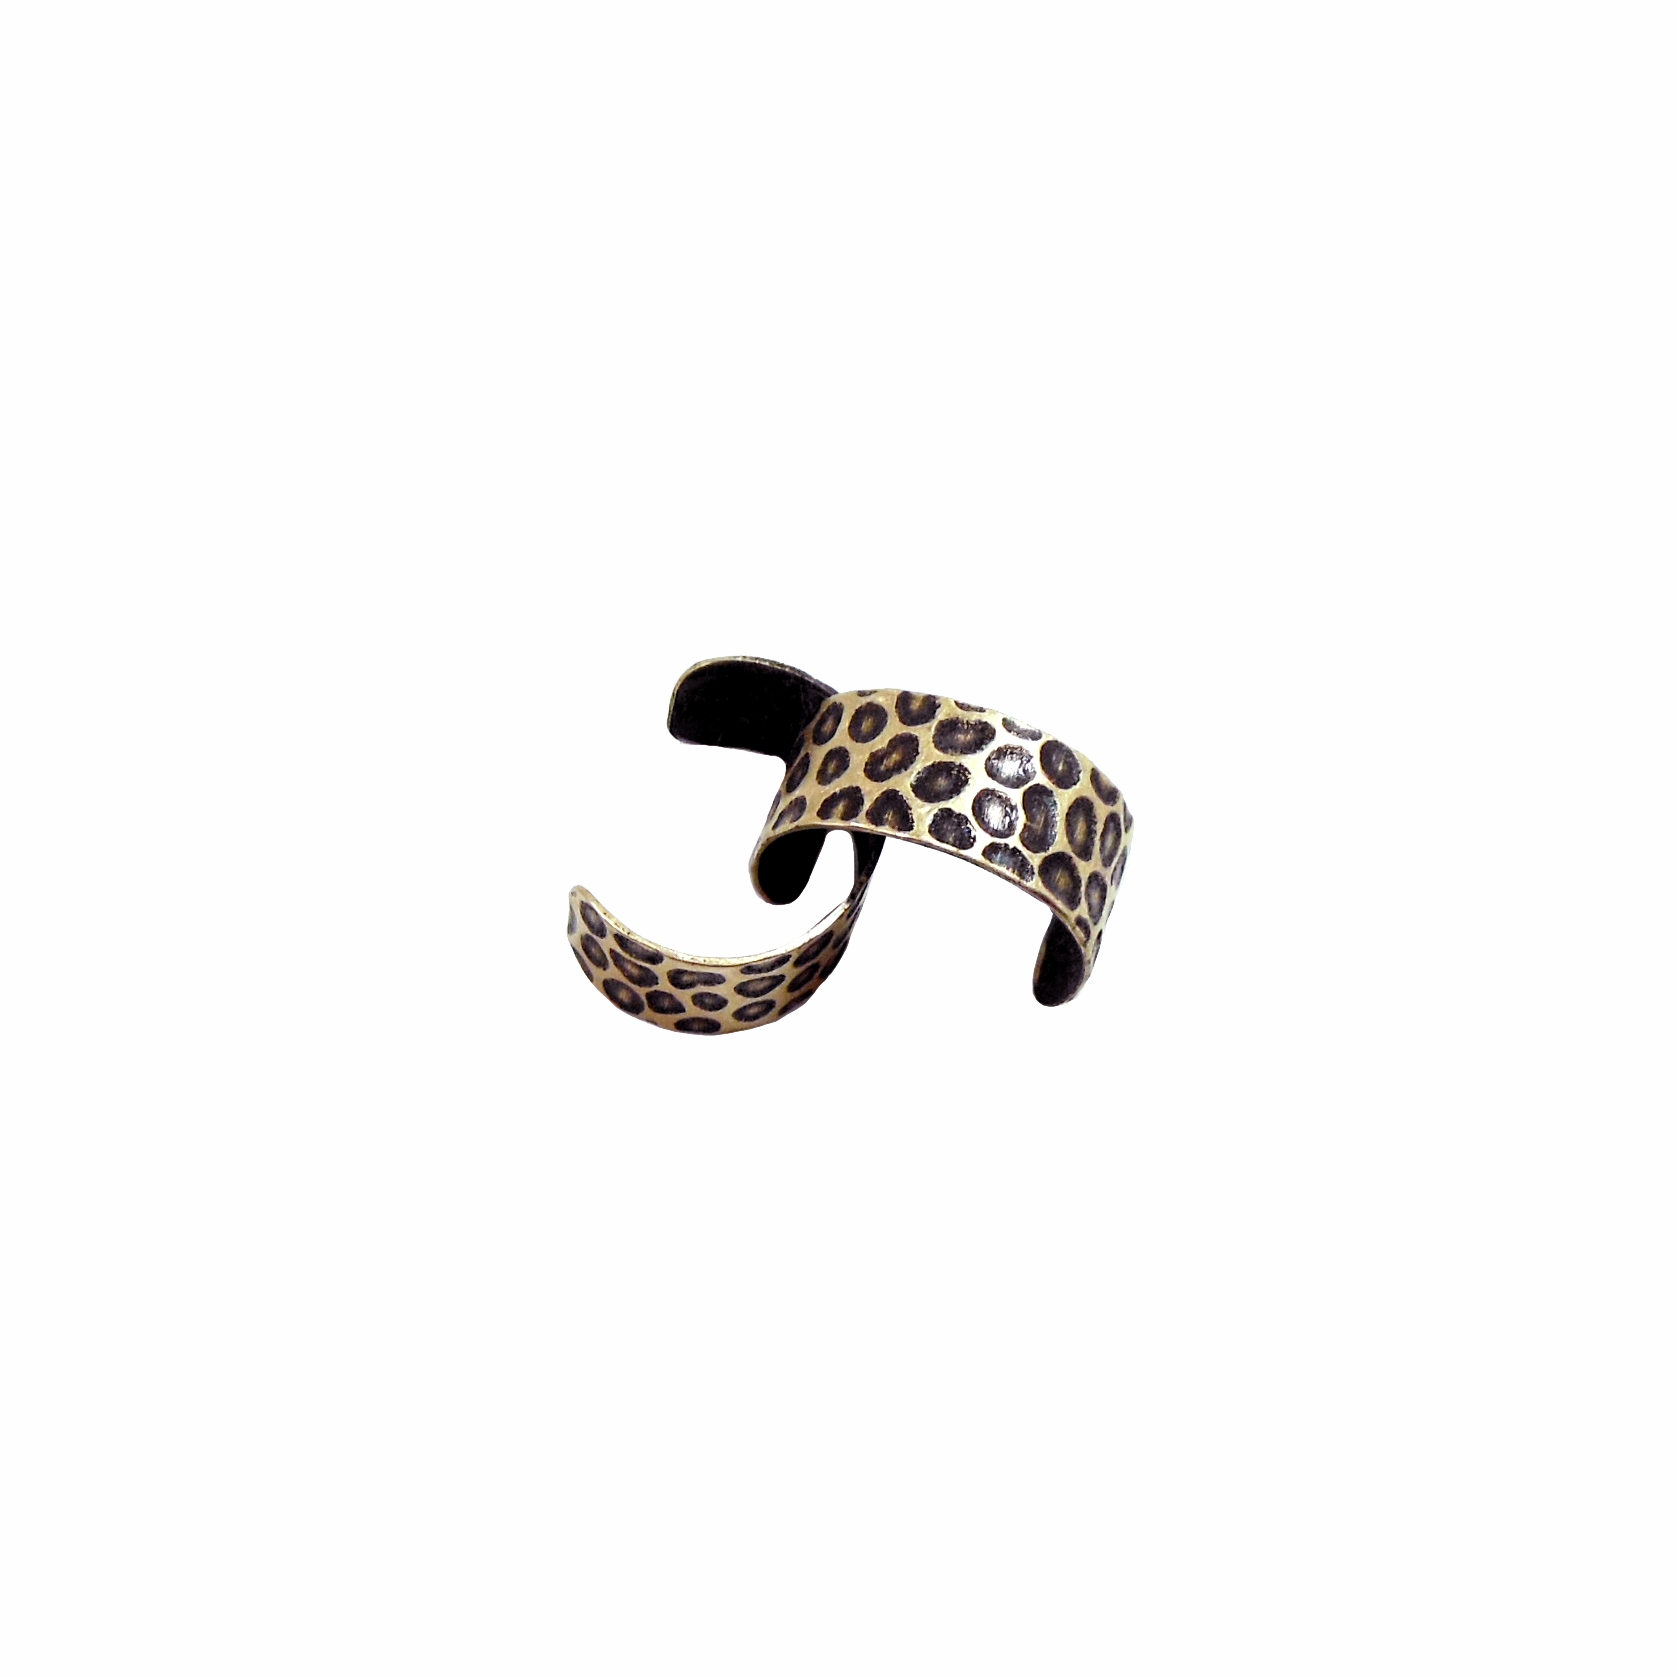 brass ox, ear cuff, earring, 06755, modern, leopard, 7mm, earrings, cuff, antique brass, antiqued, jewelry supplies, jewelry making, Bsue boutiques